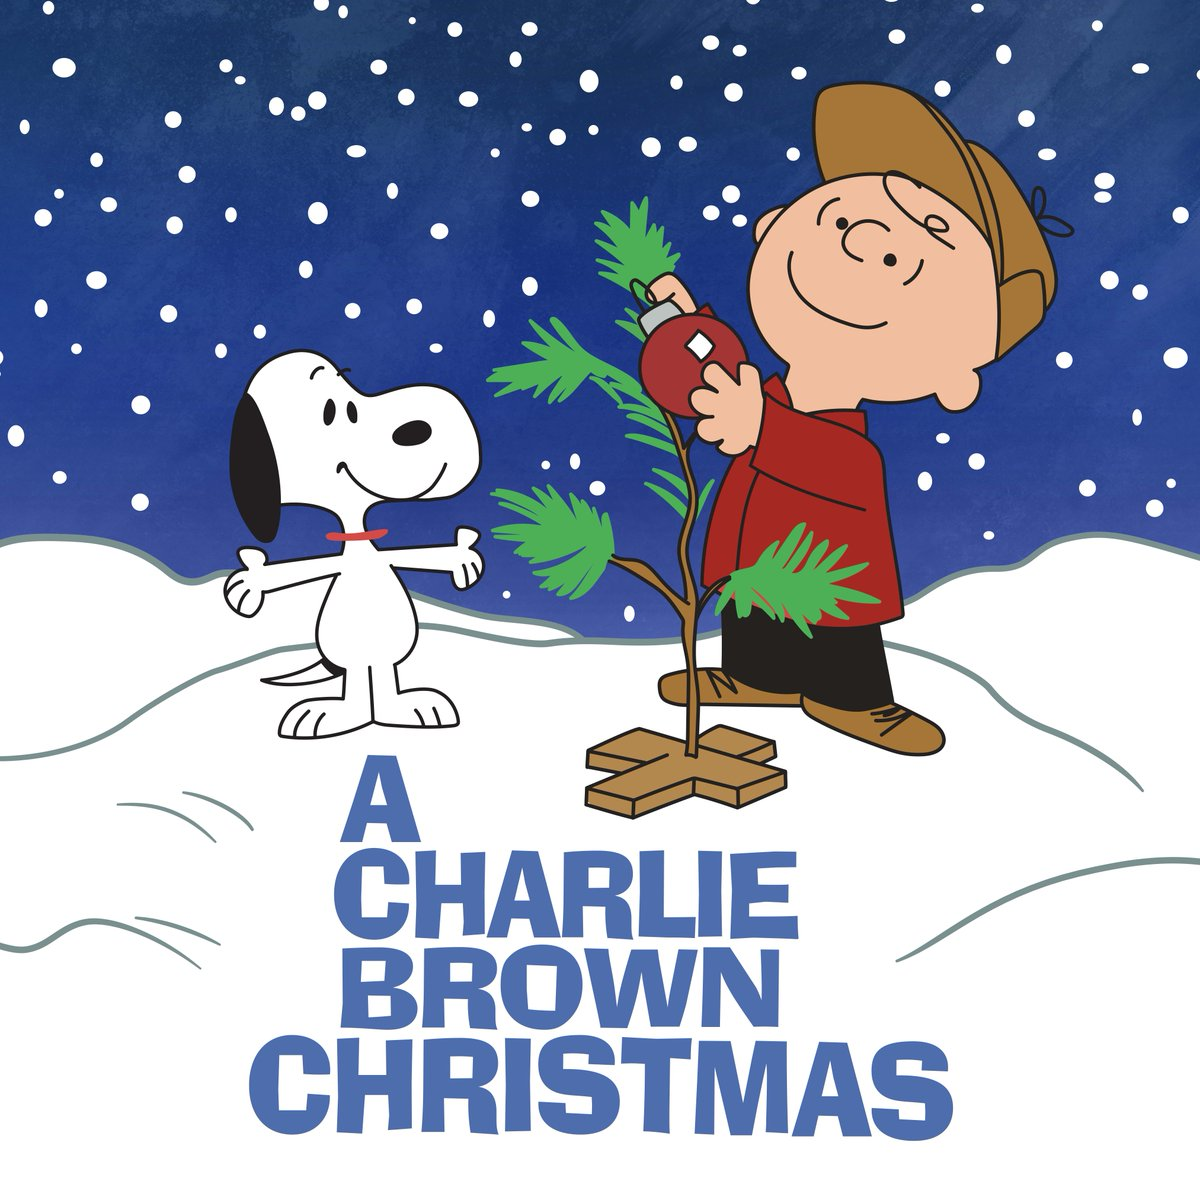 Celebrate the holidays with Charlie Brown, Snoopy and the rest of the Peanuts gang when #ACharlieBrownChristmas airs on @PBS and @PBSKIDS Sunday, December 13 at 7:30pm/6:30pm CT and streams for FREE December 11-13 on the @AppleTV app!